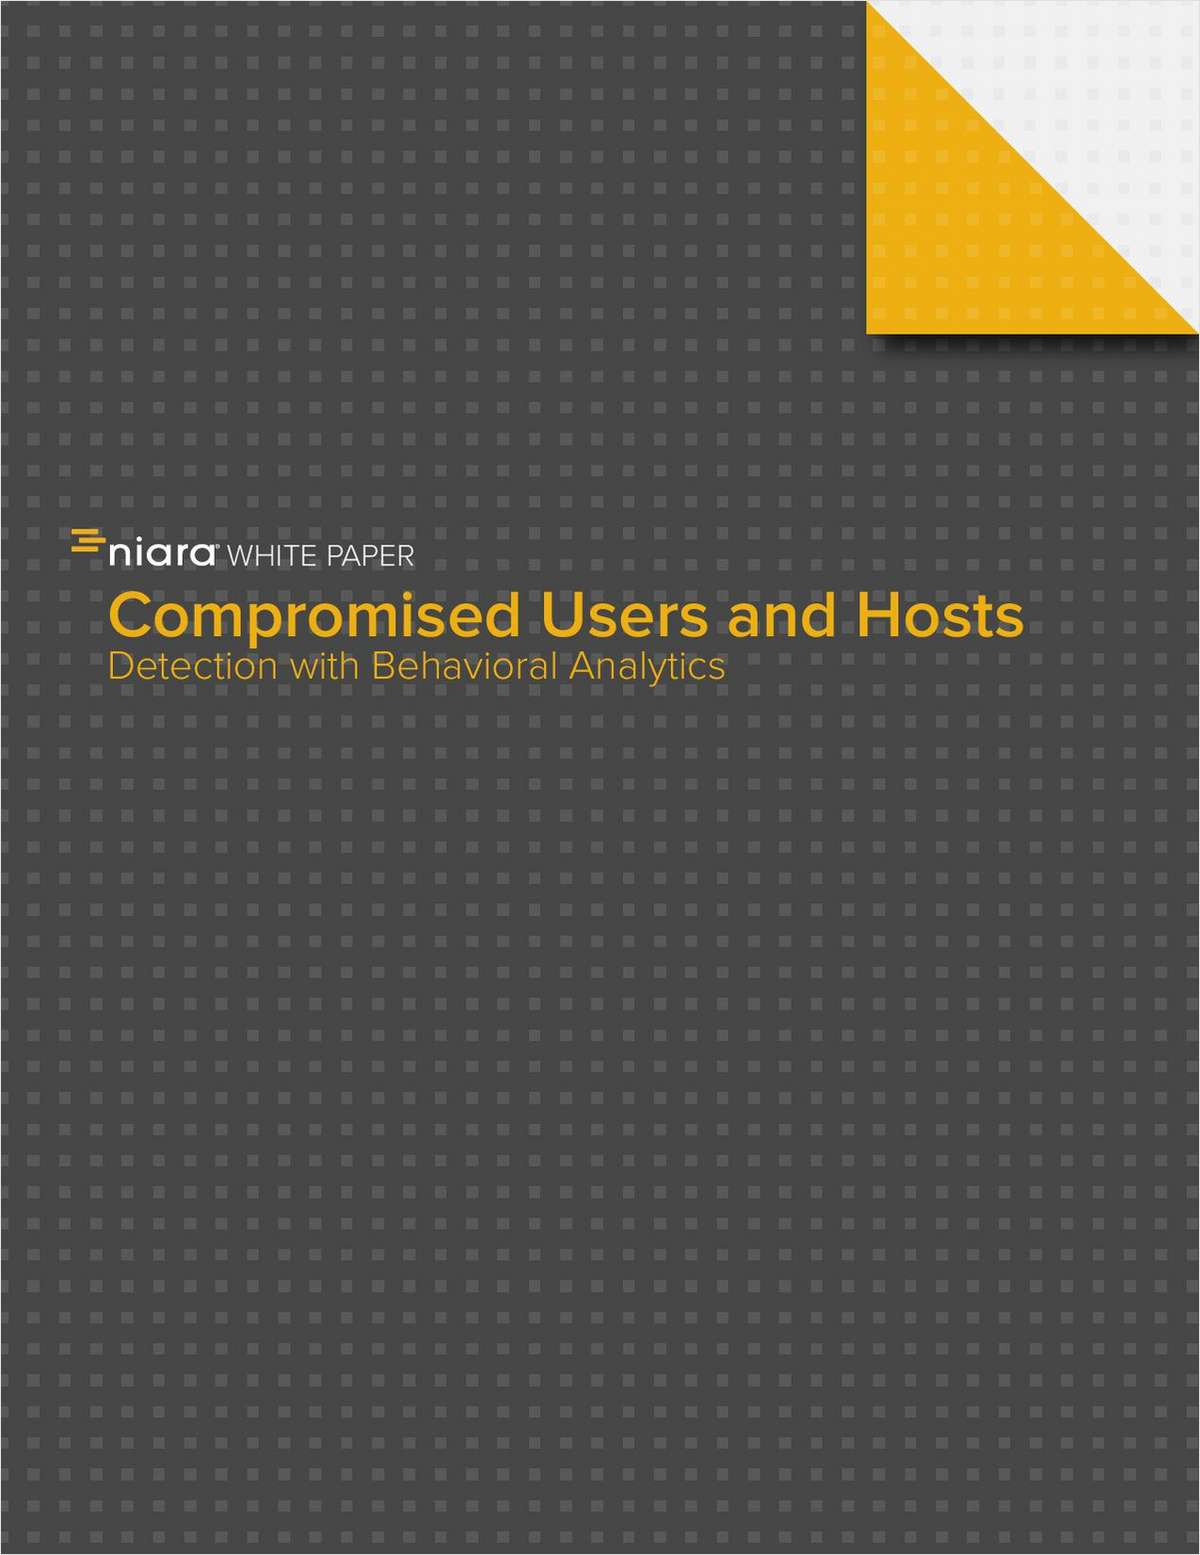 Compromised Users and Hosts - Detection with Behavioral Analytics